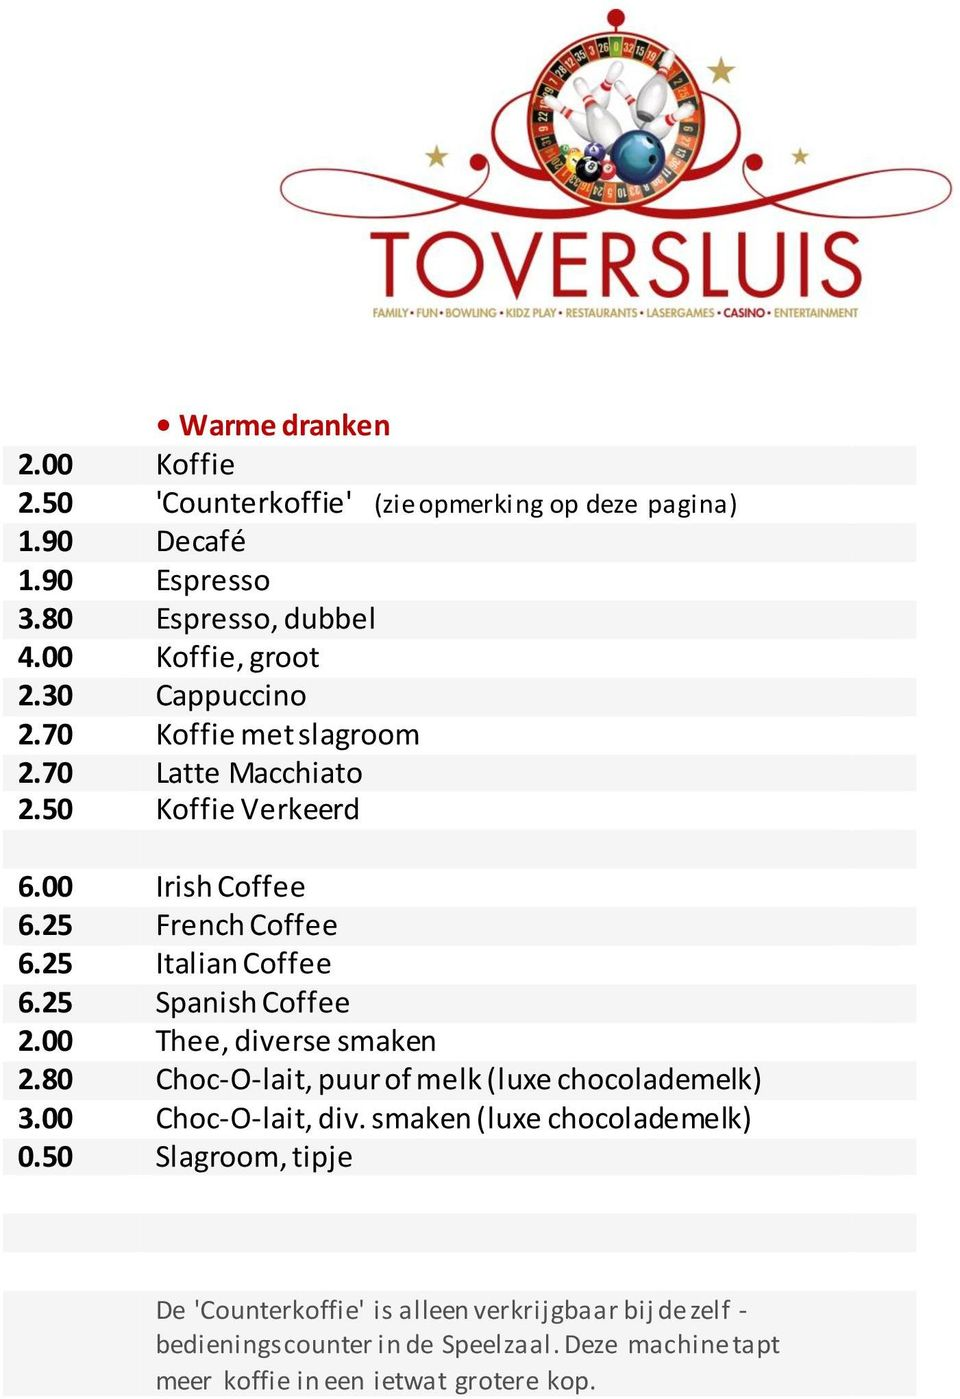 25 Spanish Coffee 2.00 Thee, diverse smaken 2.80 Choc-O-lait, puur of melk (luxe chocolademelk) 3.00 Choc-O-lait, div. smaken (luxe chocolademelk) 0.